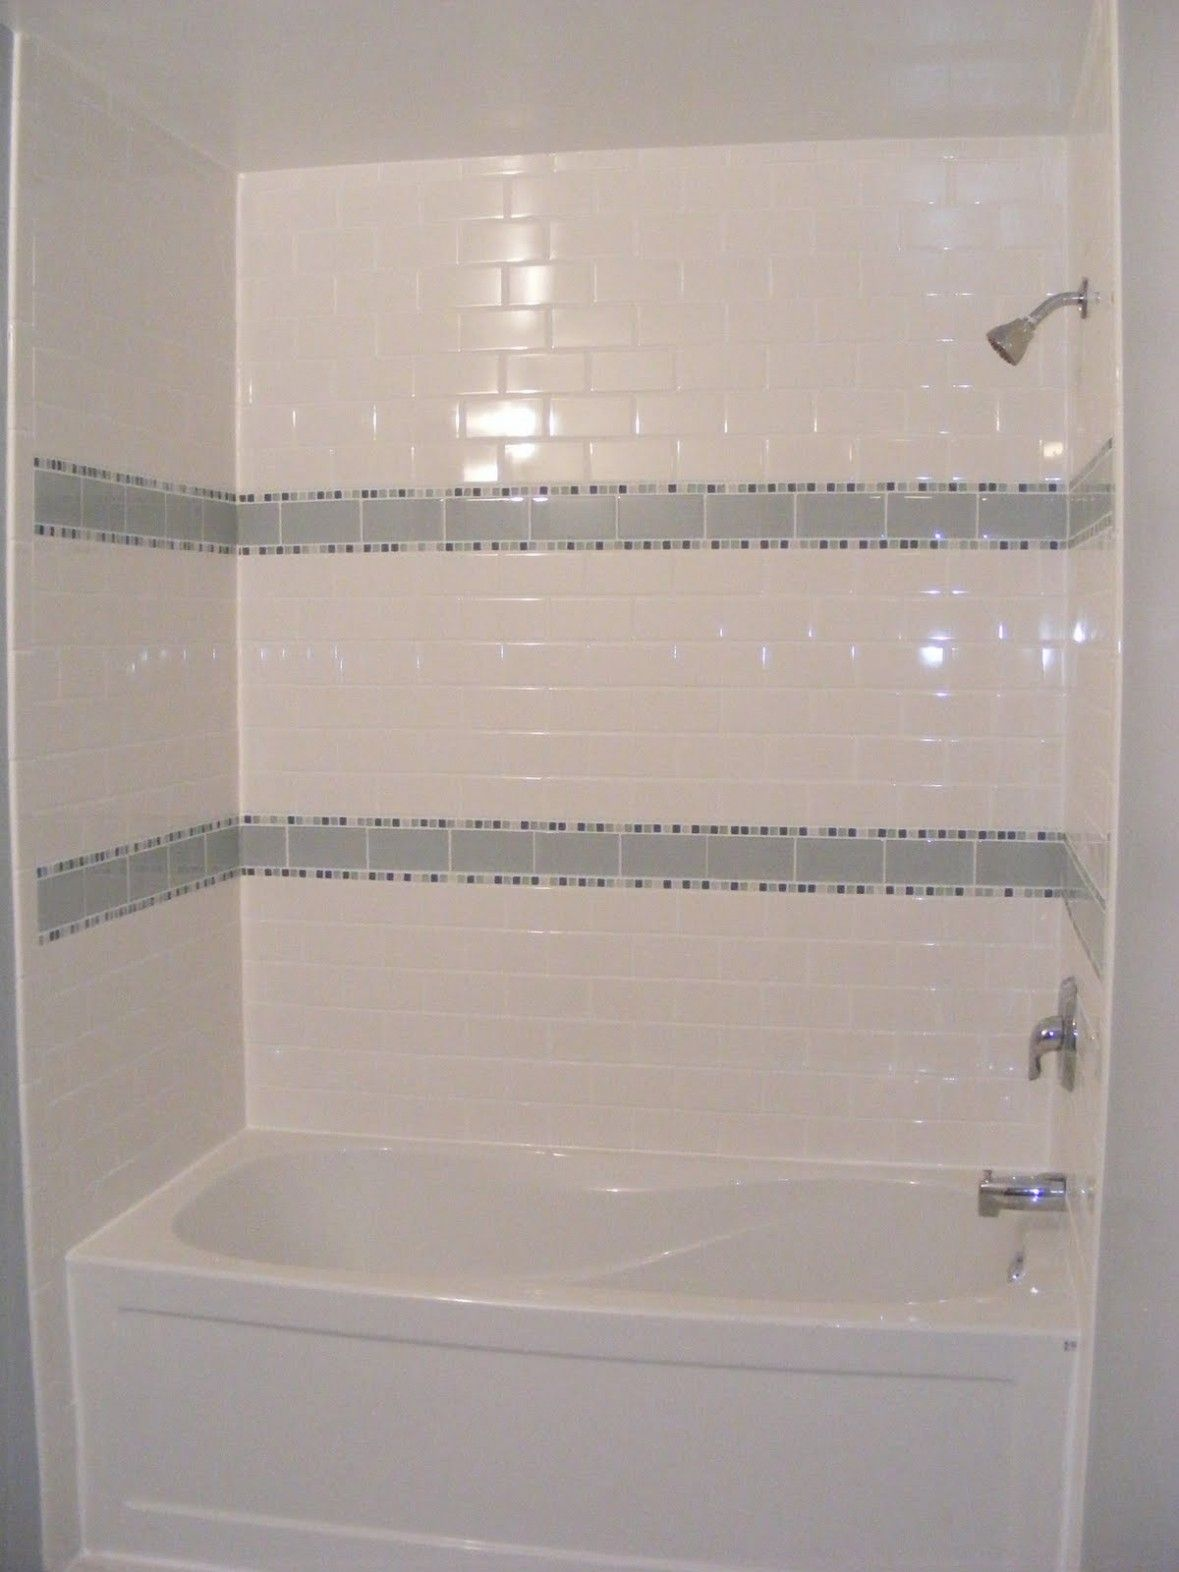 Bathroom Amusing Bath Tile Ideas Beautiful Gloss White Tile Bathroom Wall Subway Shower Bathtub With Gray